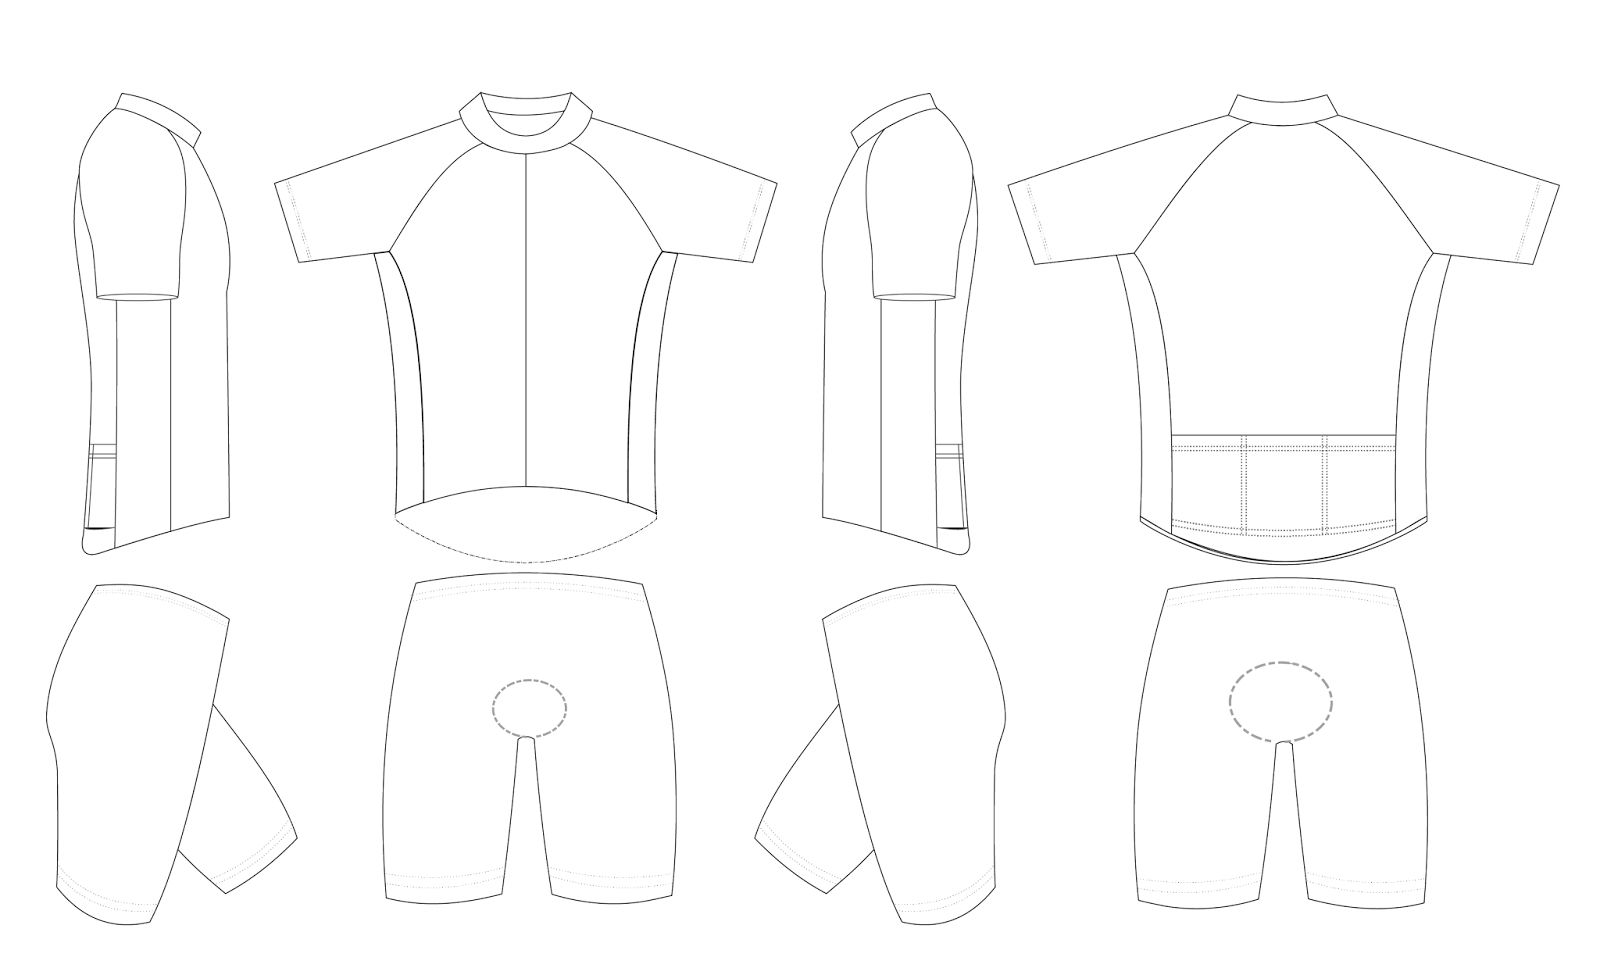 Cycling Jersey Design Template Illustrator Jersey Kekinian Inside Blank Cycling Jersey Template Great C In 2020 Cycling Jersey Design Jersey Design Design Template